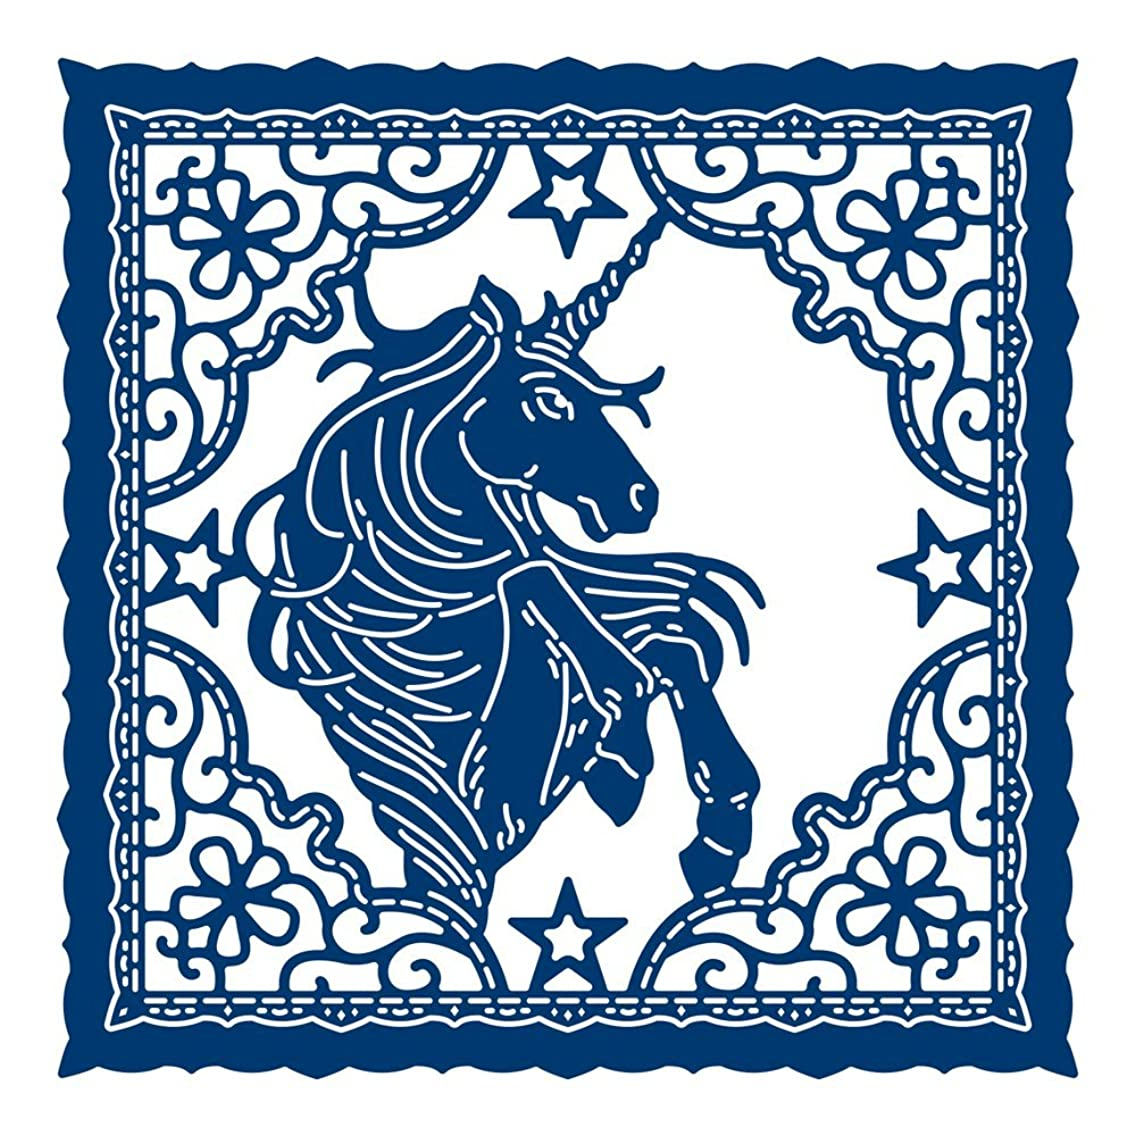 Tattered Lace Unicorn Tapestry, Metal, Silver, 10.4 x 10.4 x 0.3 cm, Cutting Die 437547